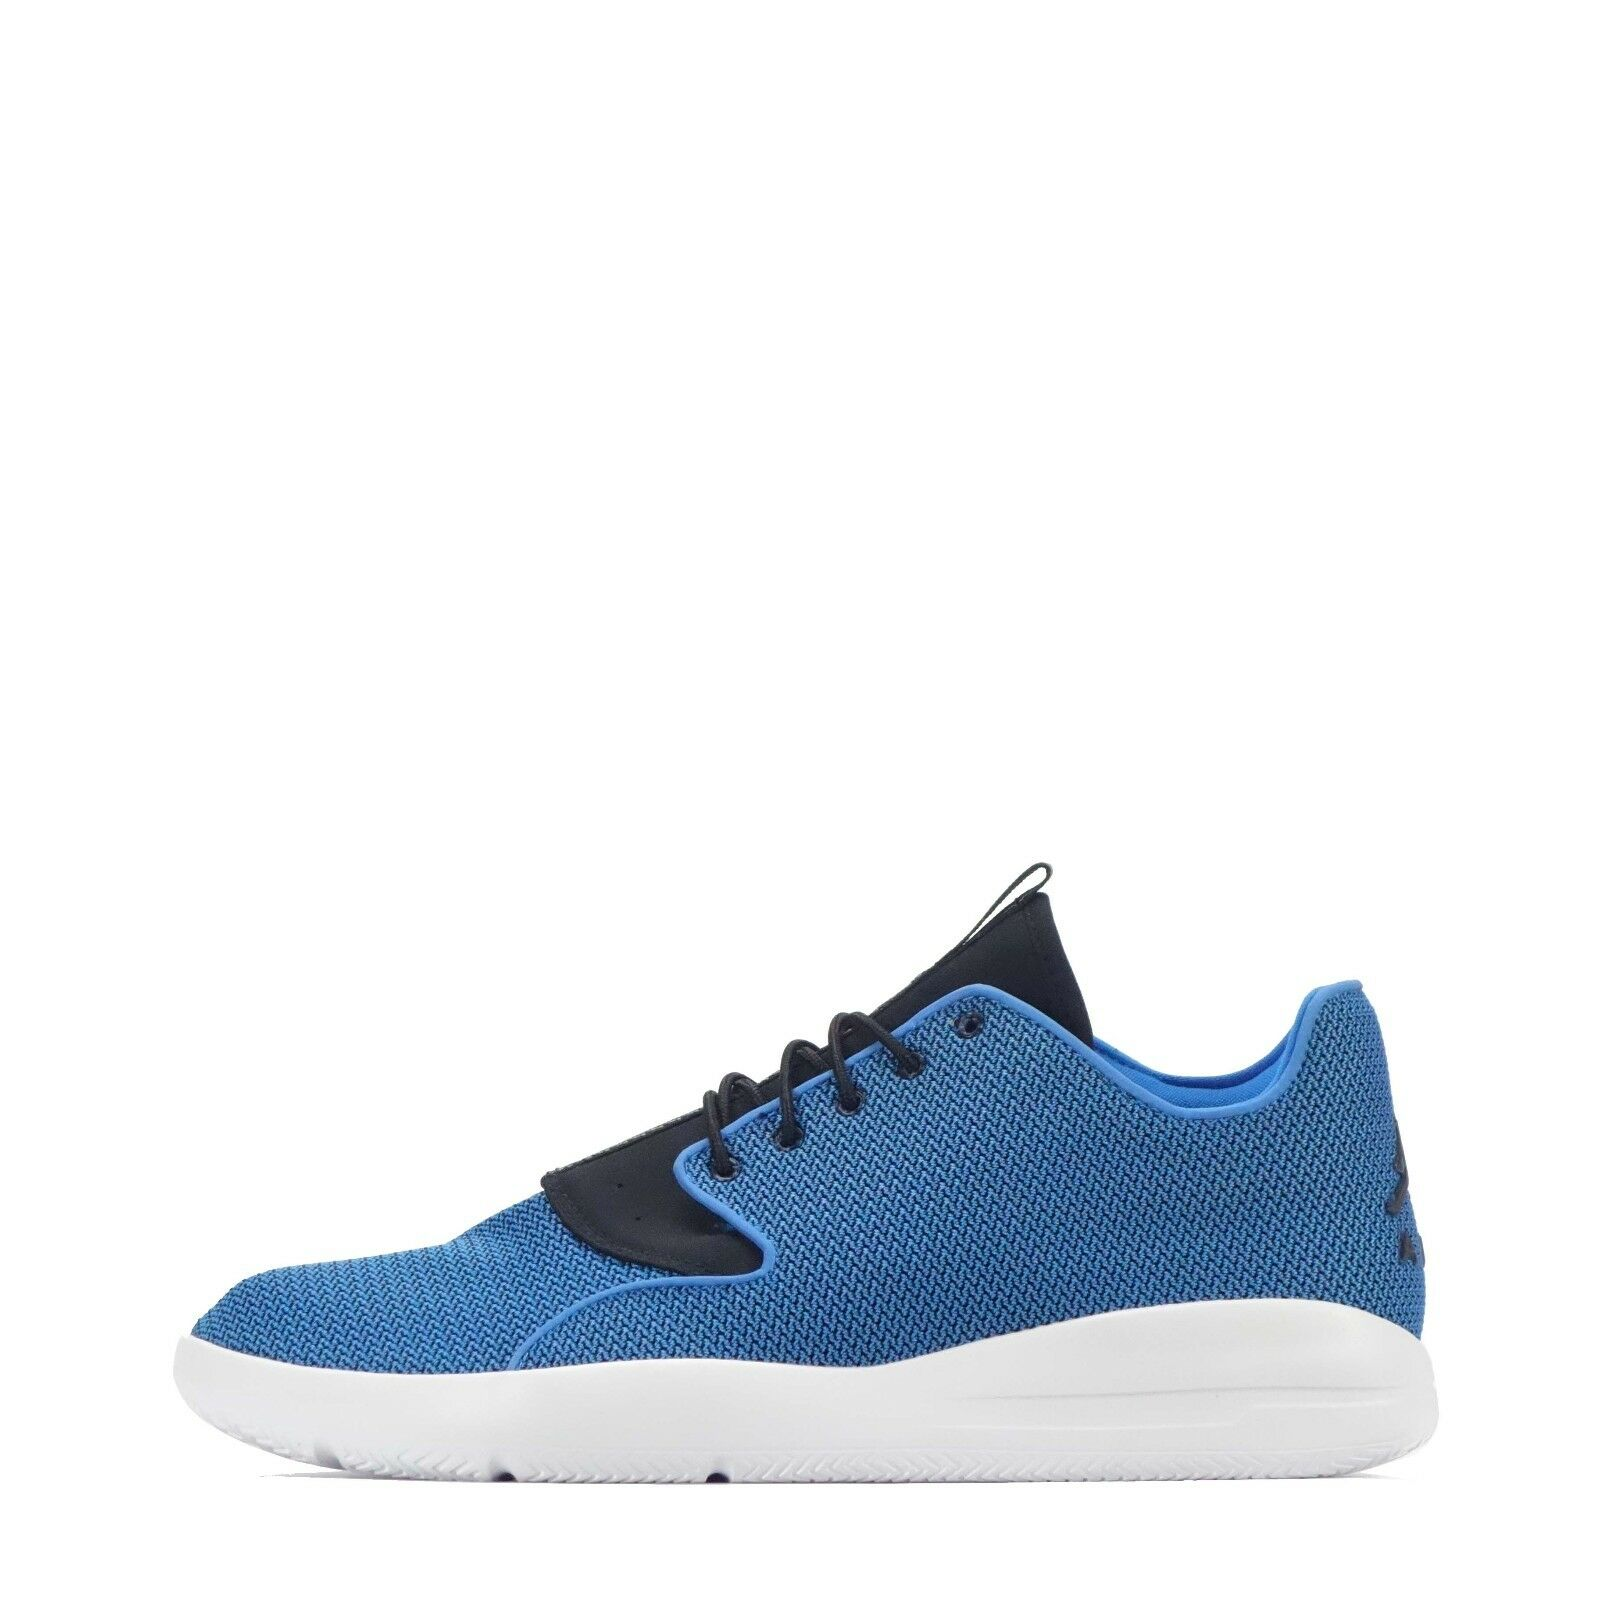 Nike Jordan Eclipse Men's Trainers Shoes Photo Blue/Black